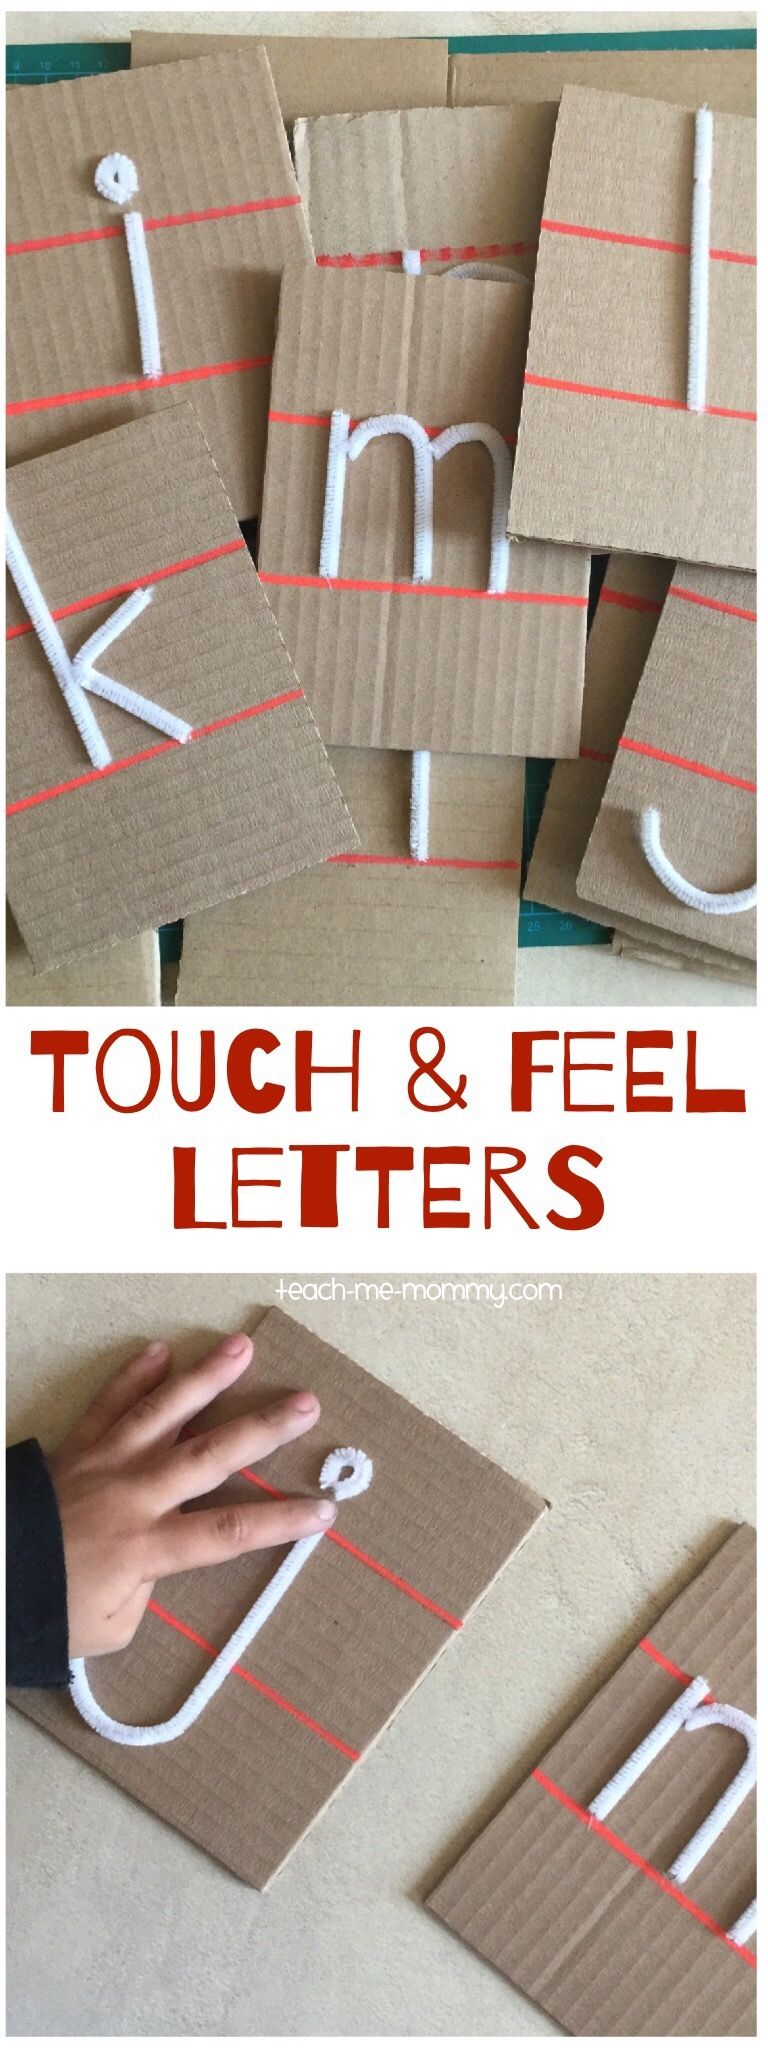 Touch u0026 Feel Letters Teach Me